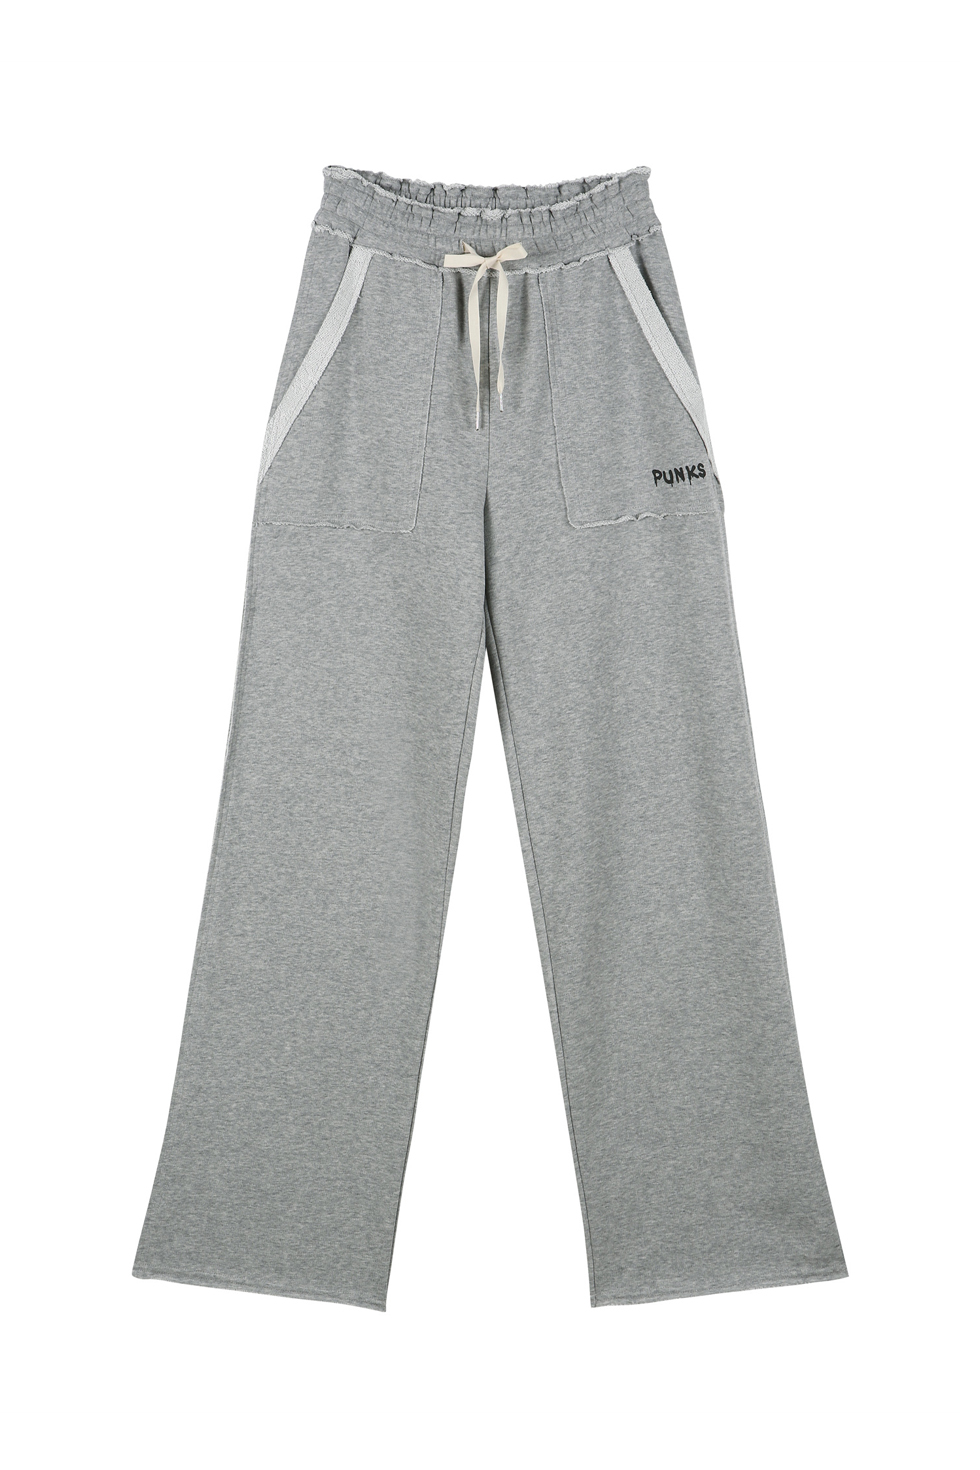 """PUNK"" JERSEY PANTS - GREY"